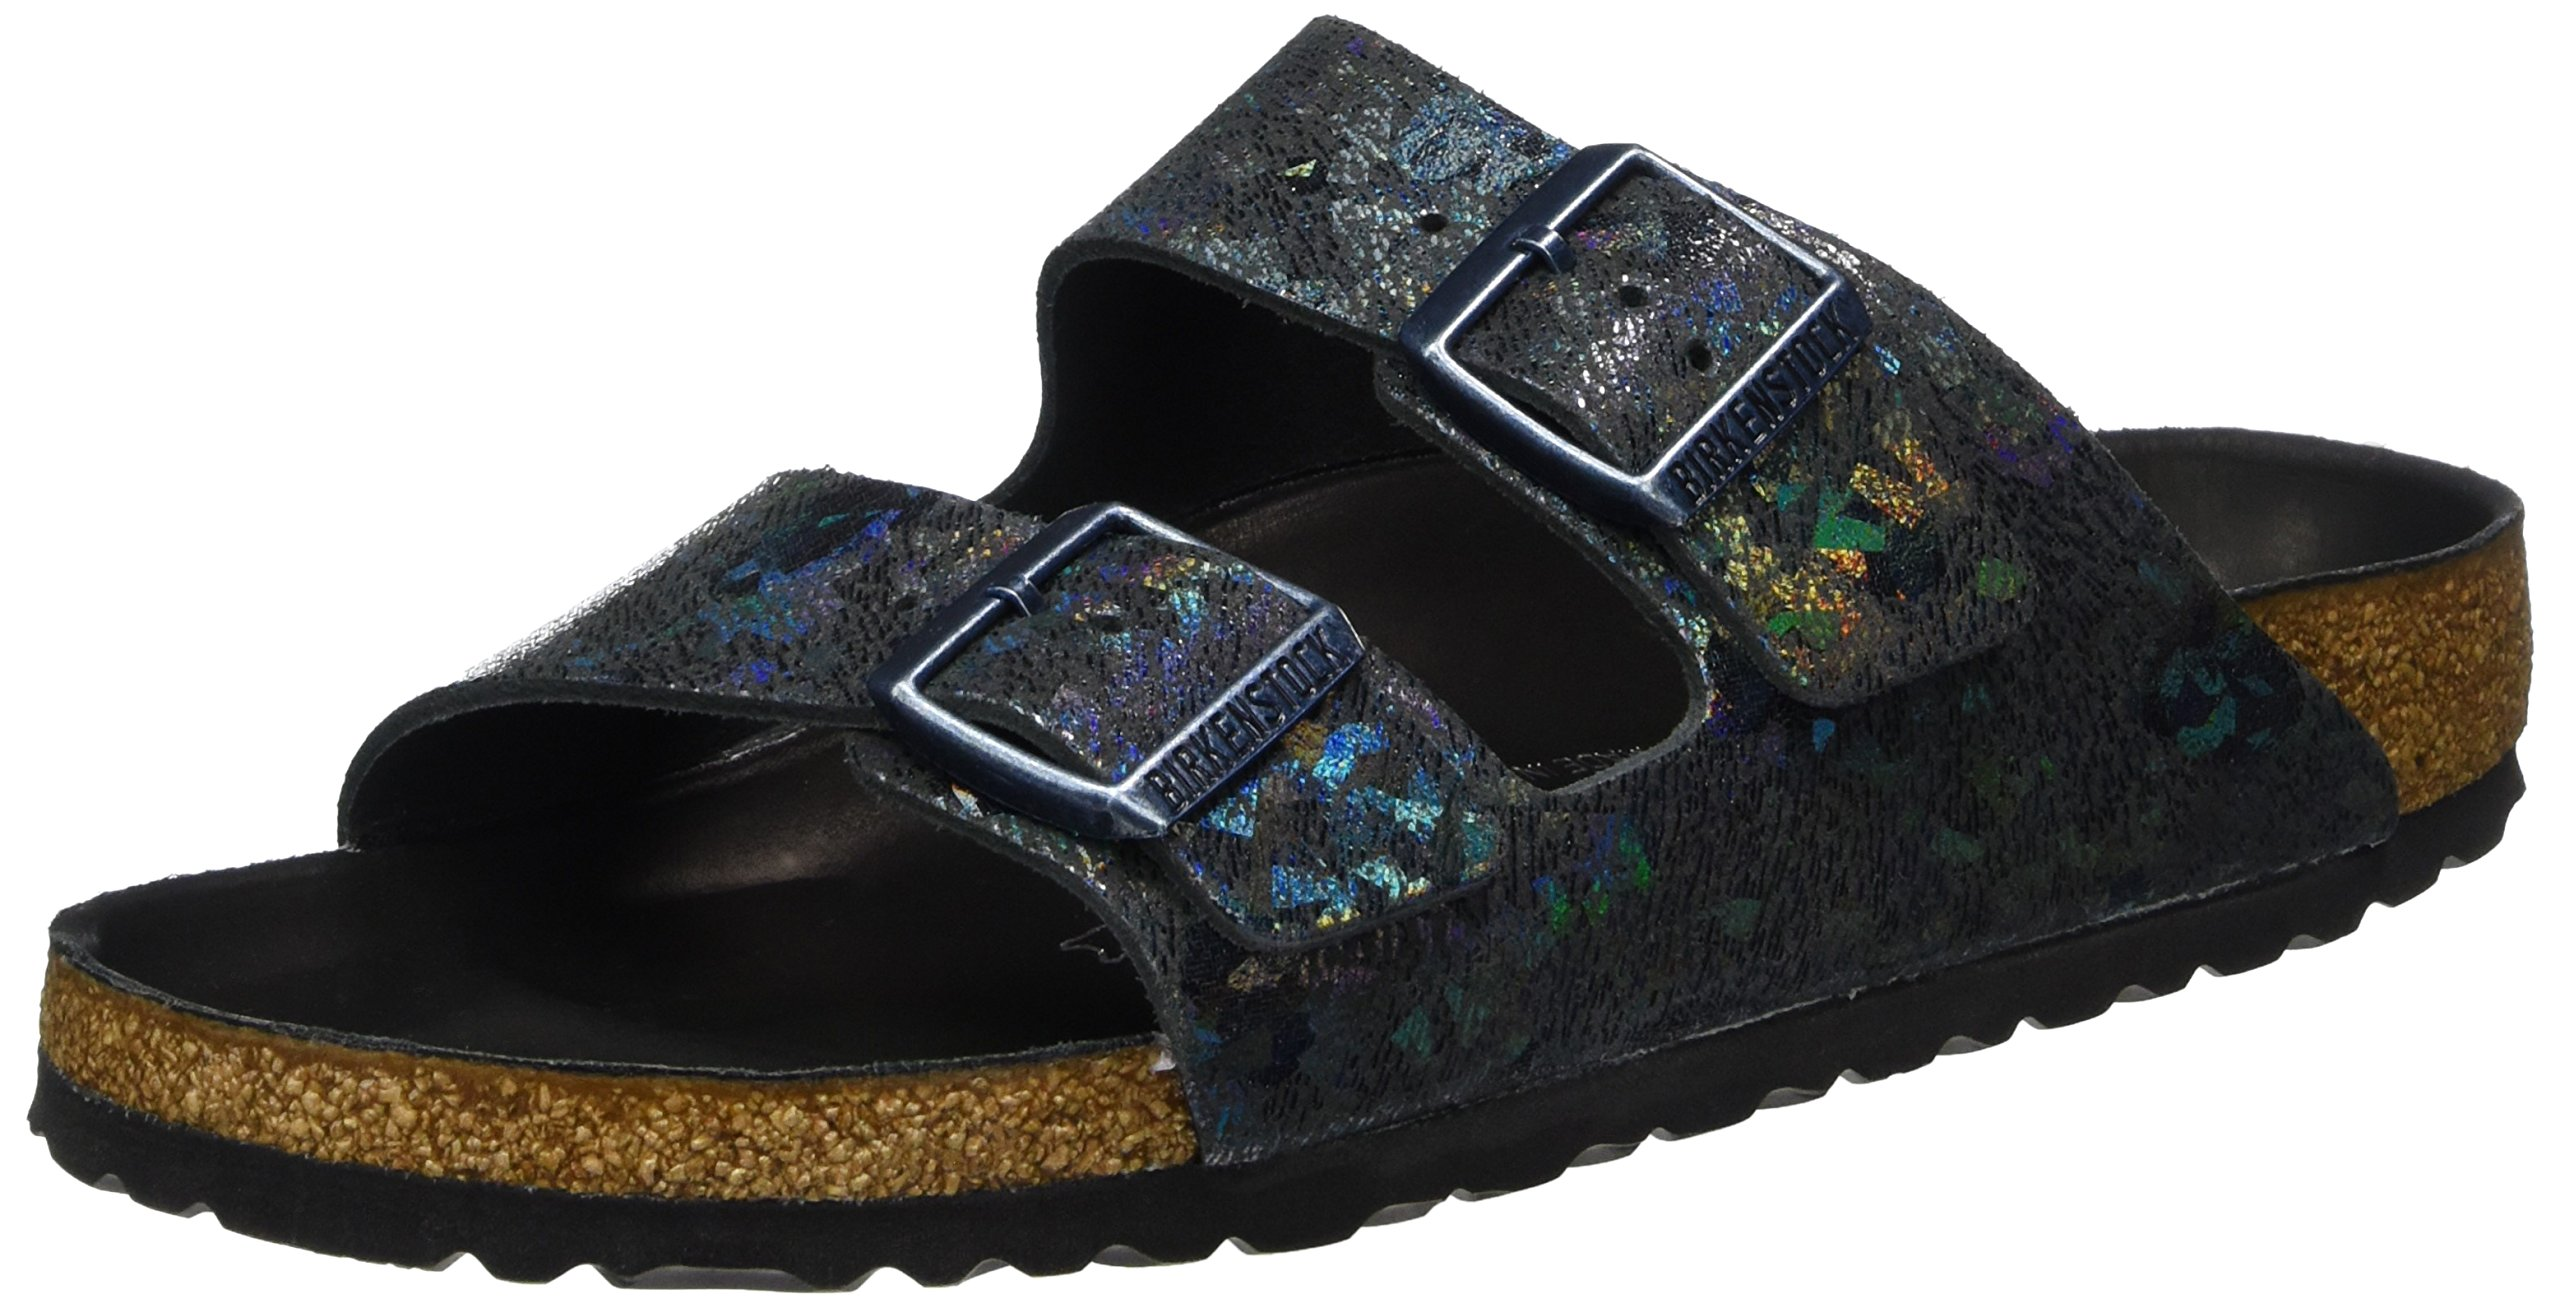 Birkenstock Arizona Lux Leather Spotted Metallic Black